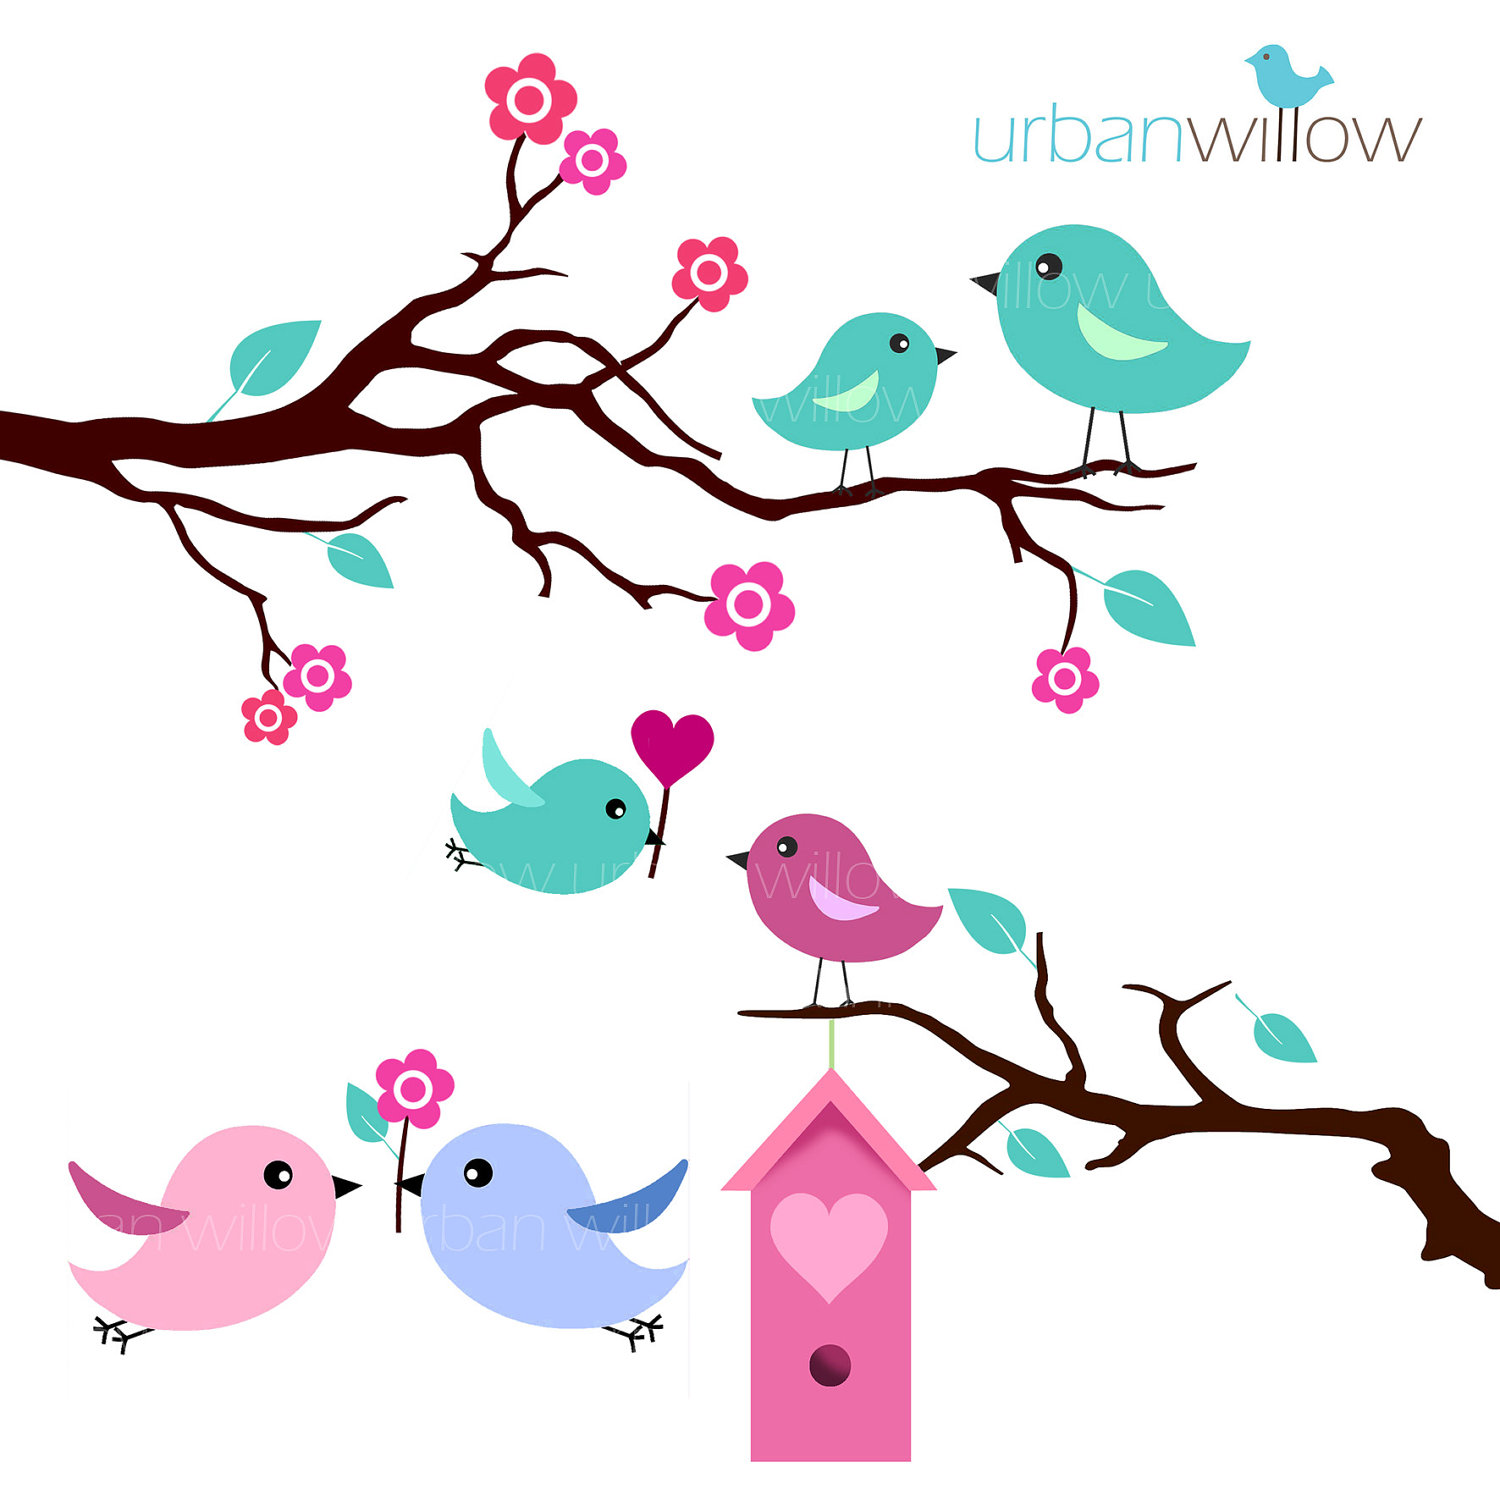 Vintage Love Bird Clipart #1 - Love Birds Clipart